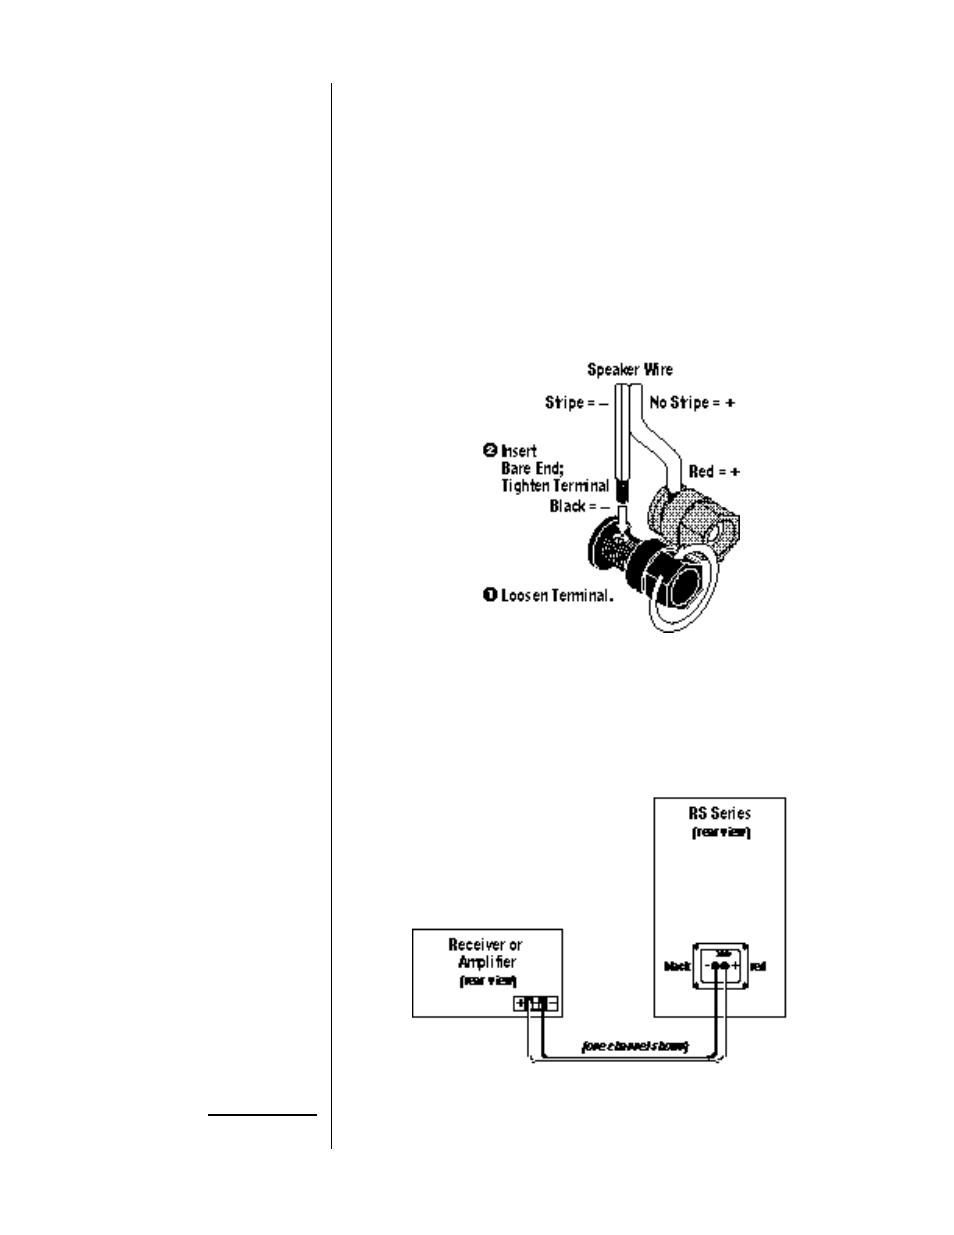 Iring Ystem Infinity Reference Standard Rs 2 User Manual Page 5 Wiring Diagram Home Theater Amplifier 1 8